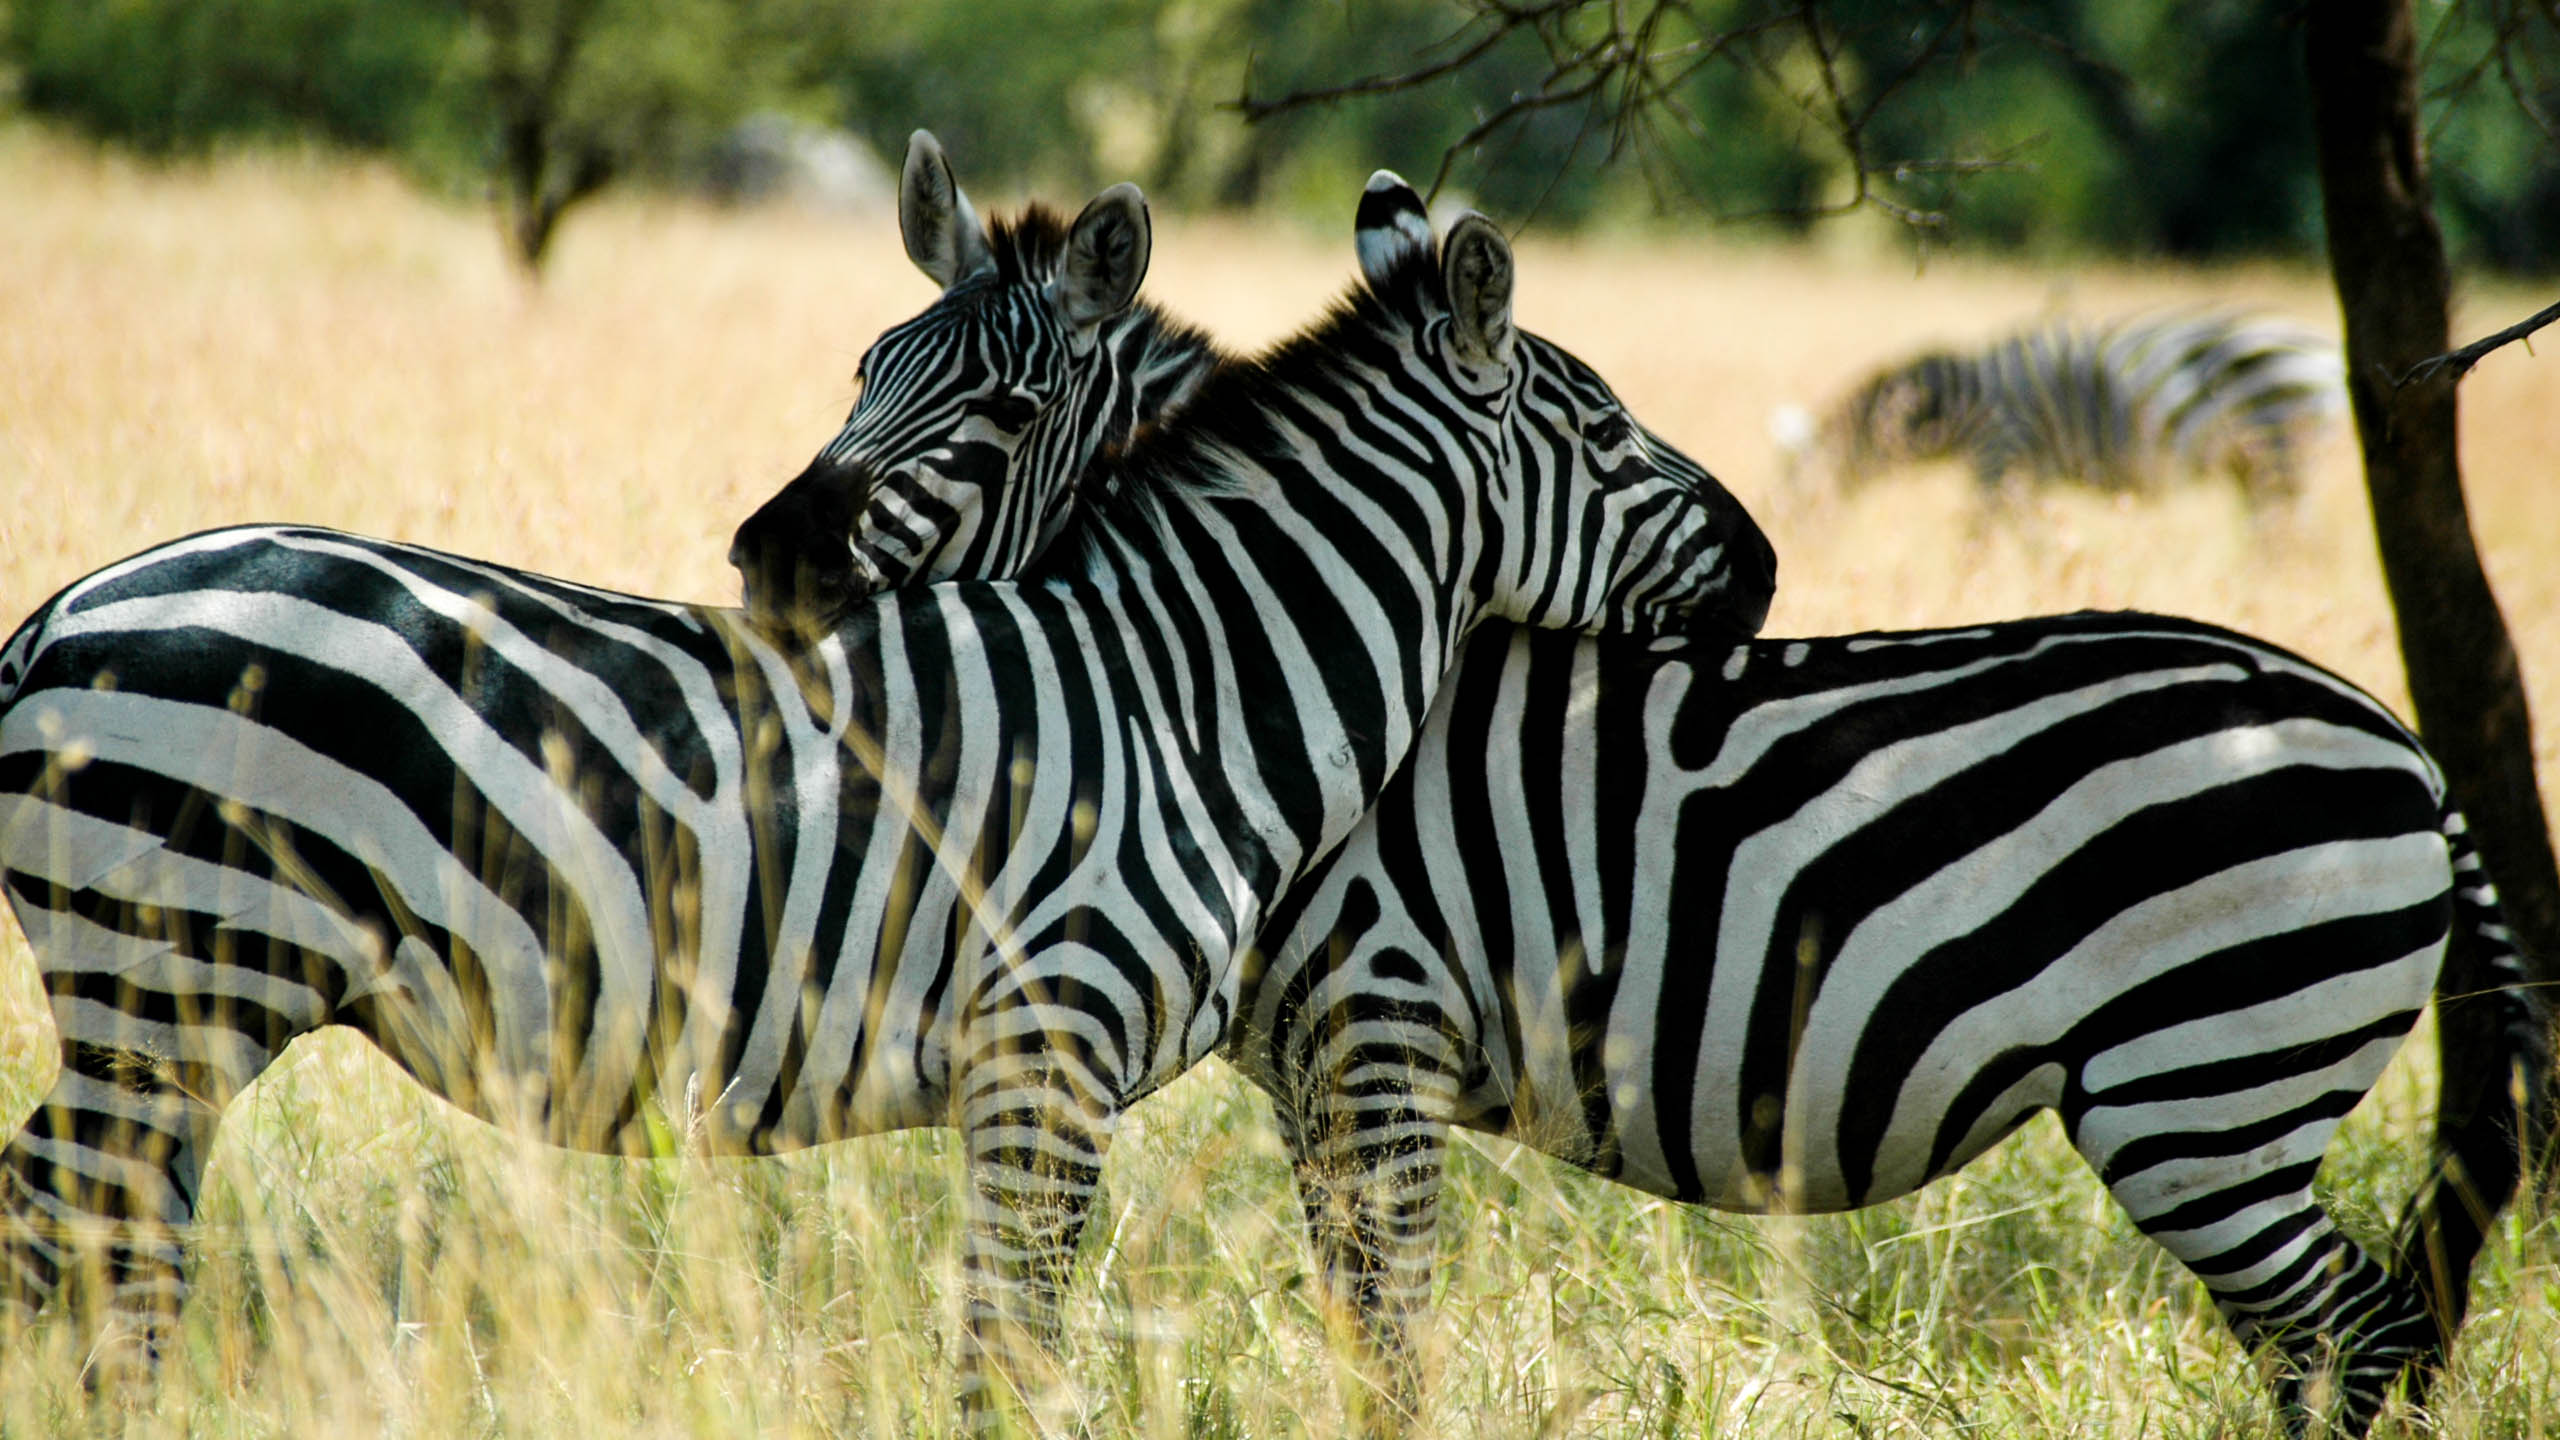 Tanzania zebras crossing necks